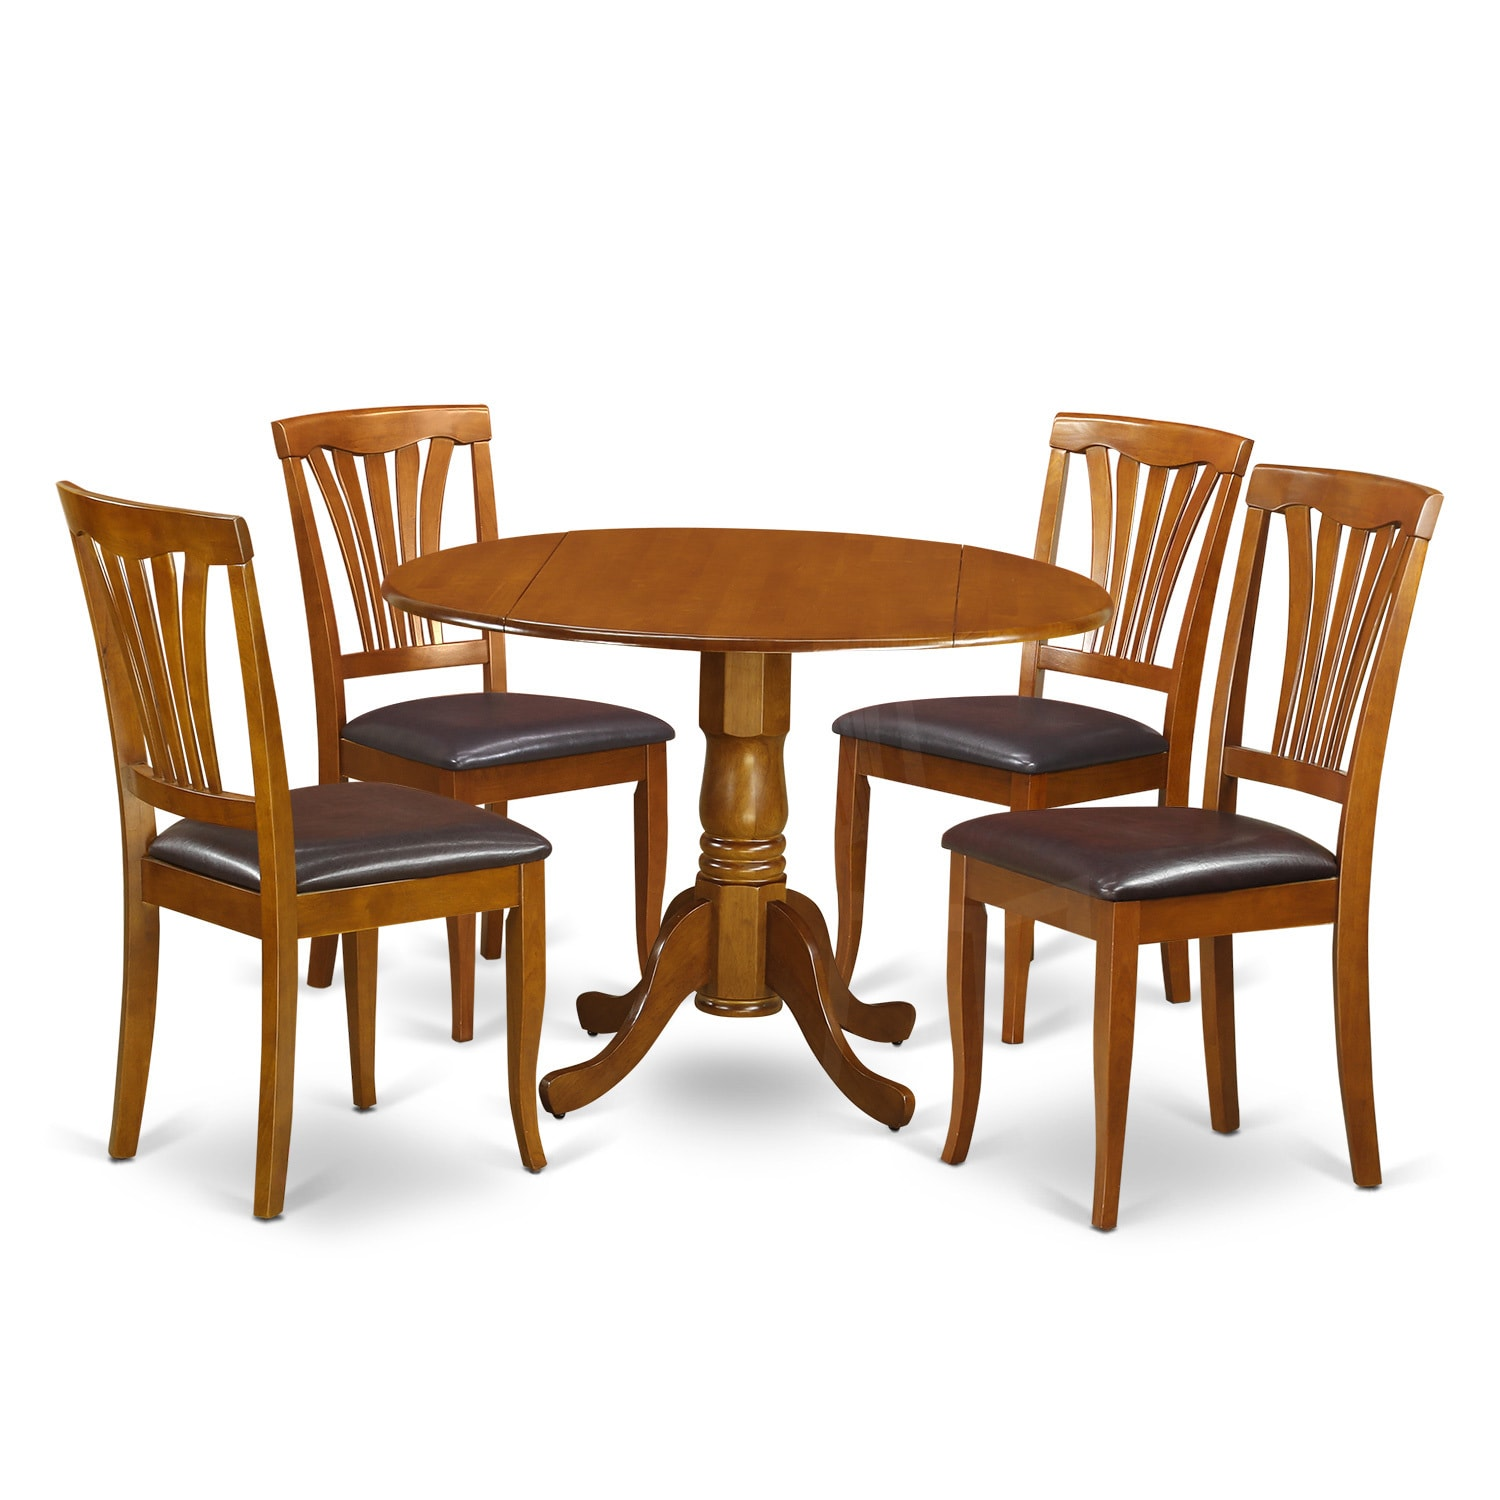 3-piece Dining Set with 1 Table and 2 Dining Room Chairs ...